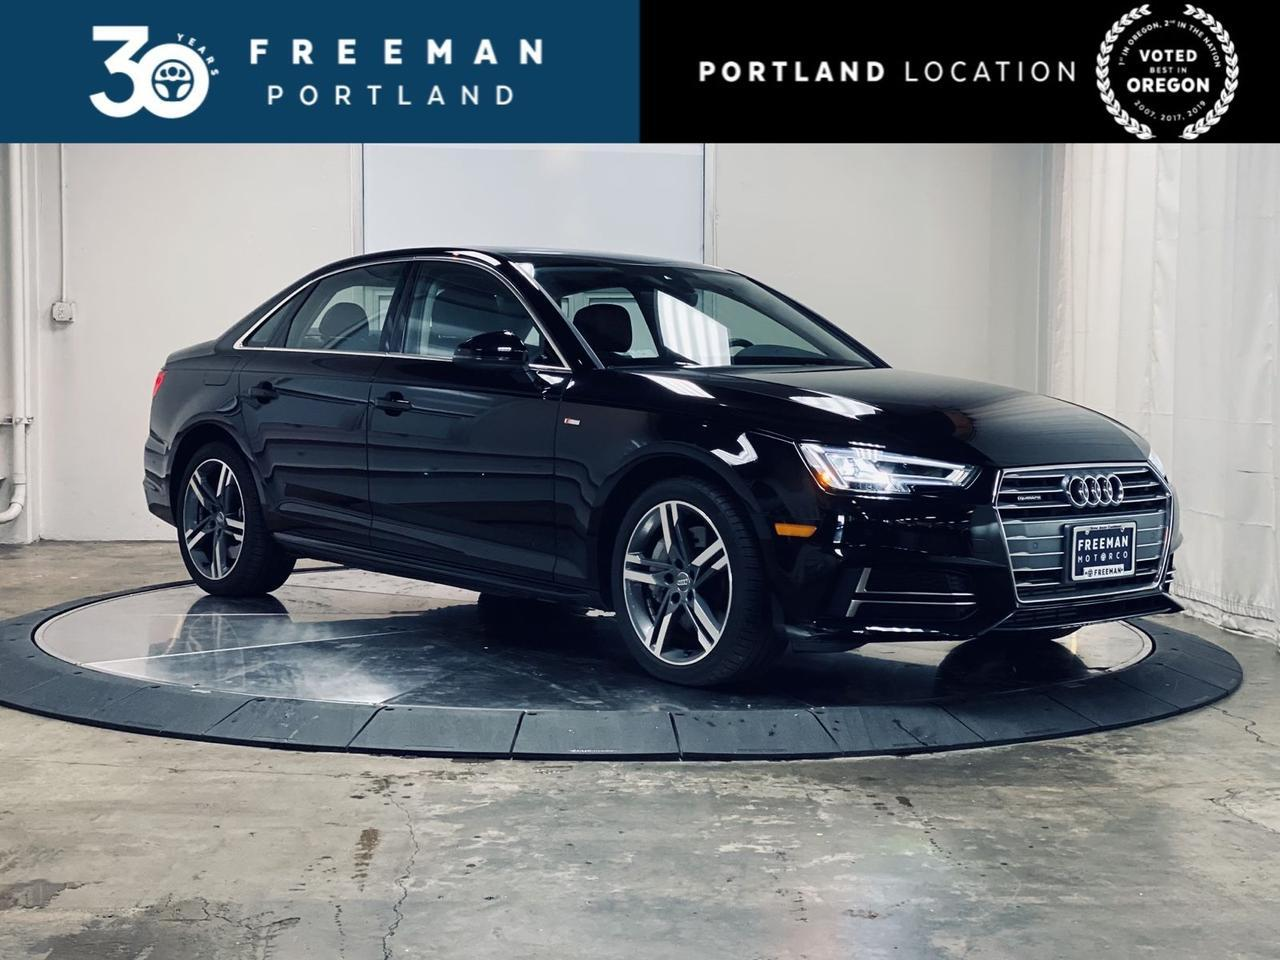 2018 Audi A4 Premium Plus Virtual Cockpit Bang & Olufsen Sound Portland OR